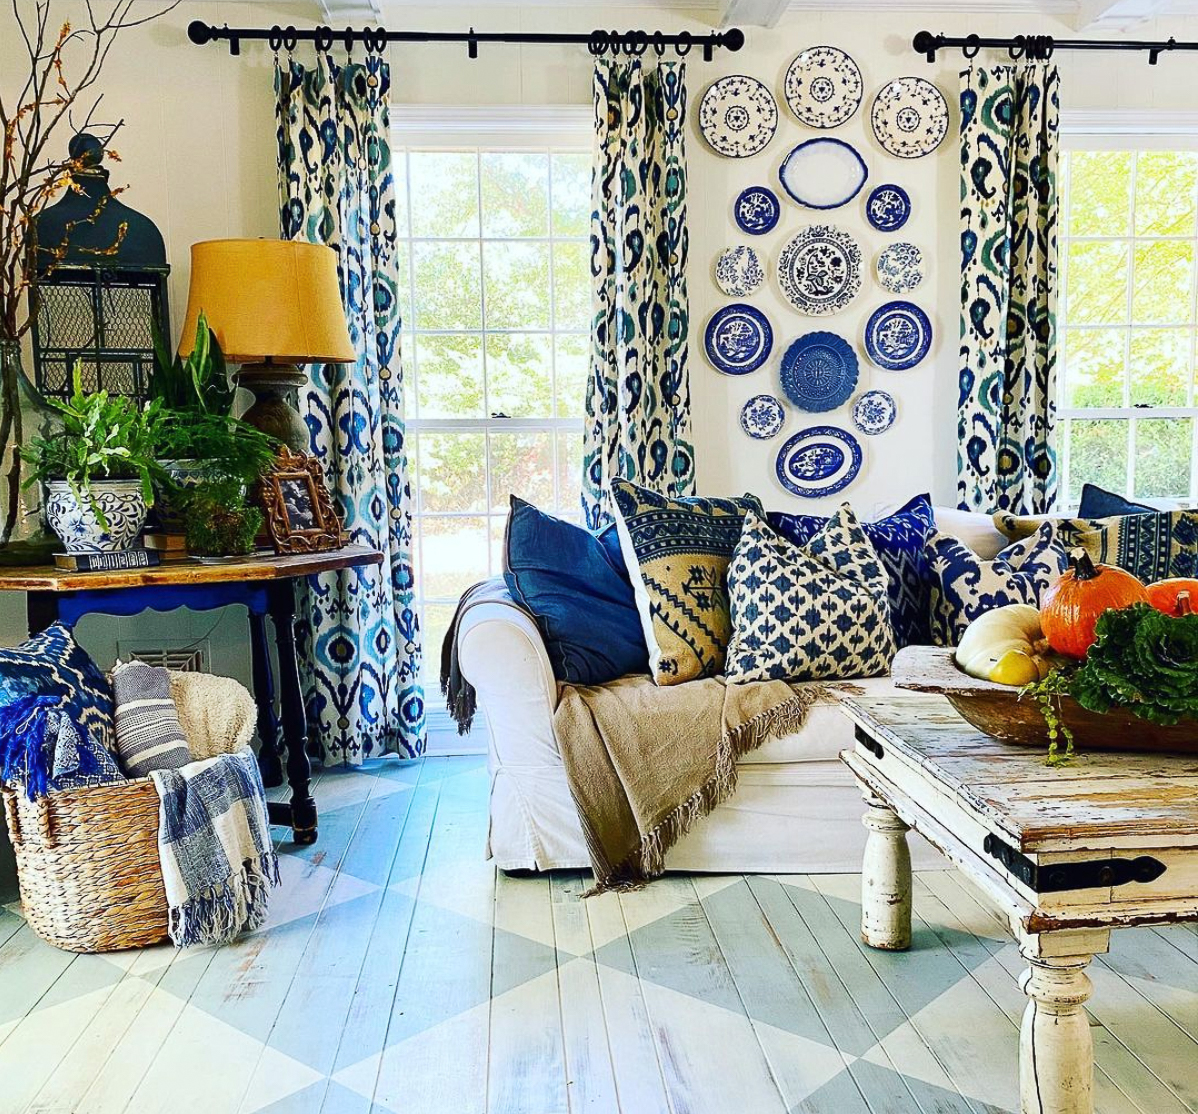 Love this soothing blue room with hand painted diamond pattered wood floors and beautiful plate wall